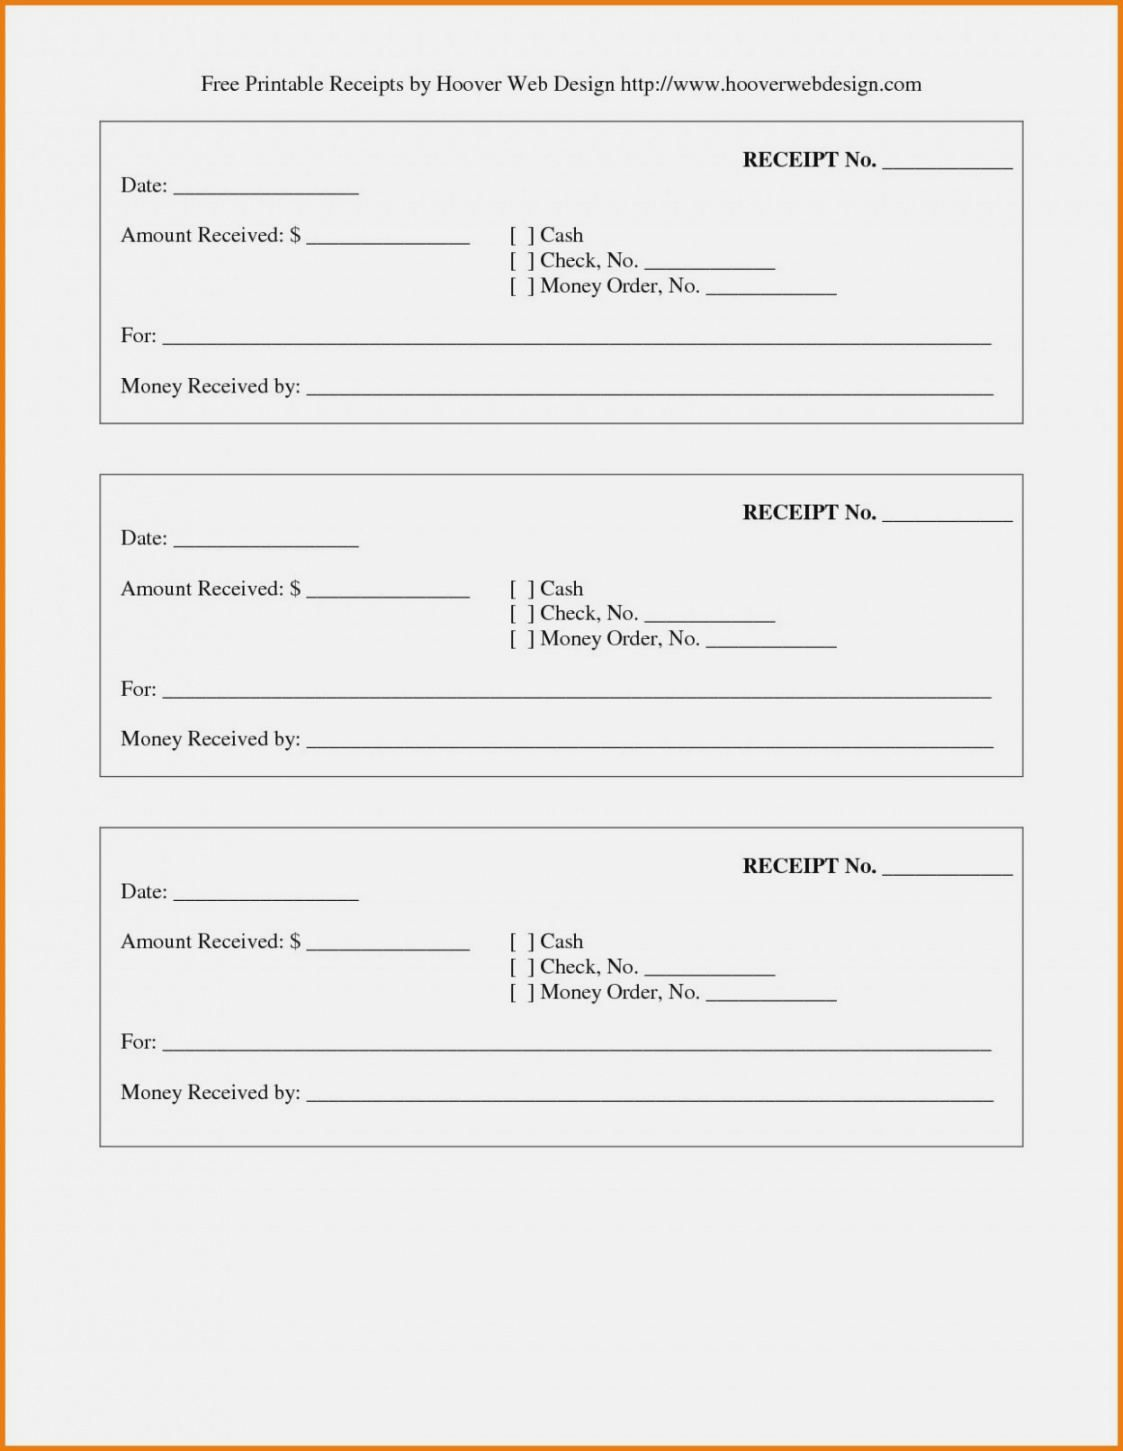 Free Printable Payment Receipts Create Cash Receipt Free Printable Cash Payment Receipt Template With Red Invoice Template Word Receipt Template Word Template